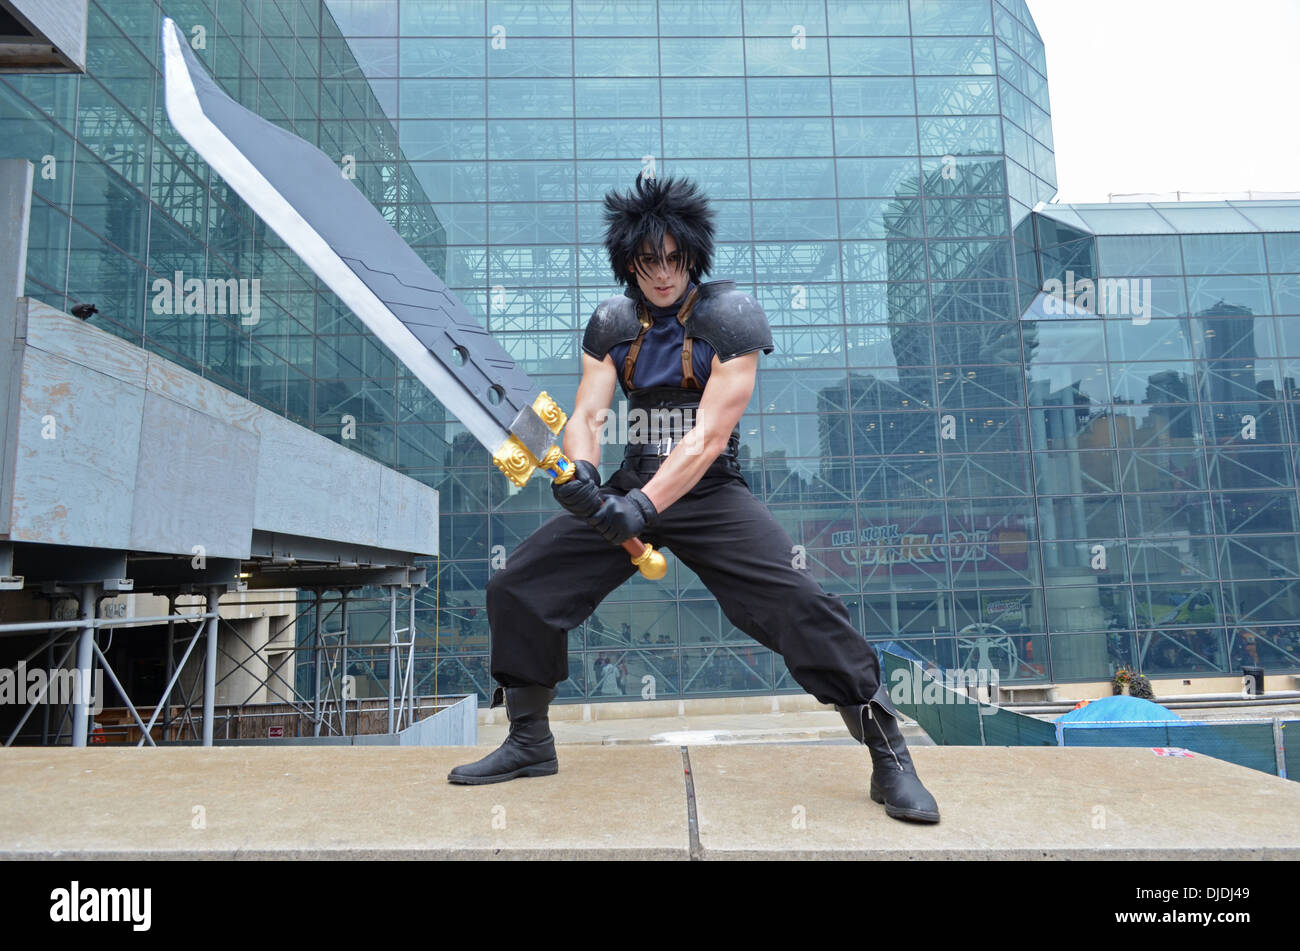 Comic Con NYC 2012 attendee  dressed as Zack Fair, a character from the video game Final Thunder - Stock Image